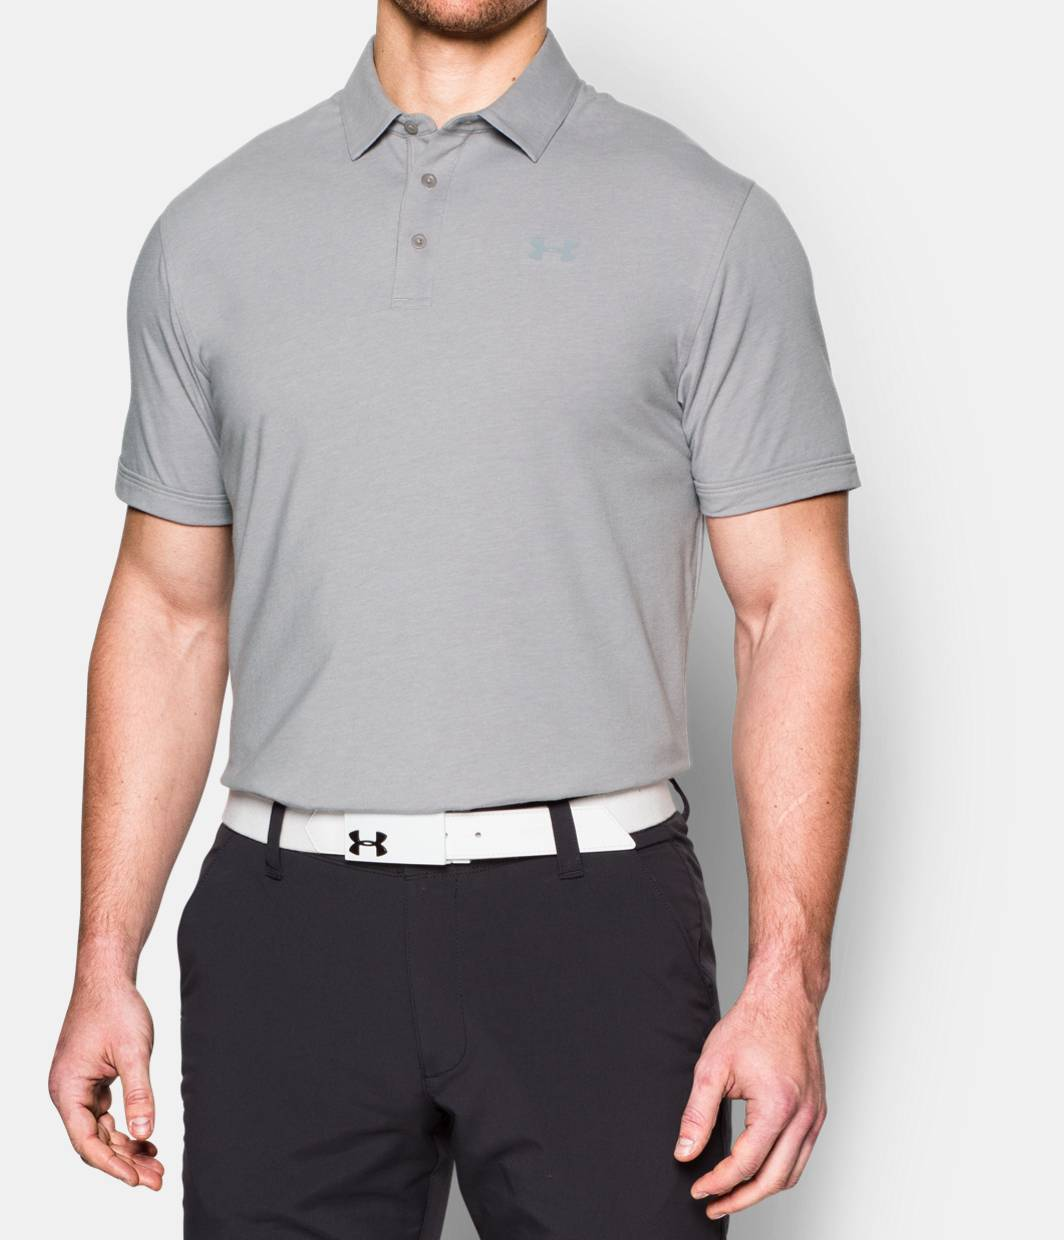 Polos Polo Golf Shirts Under Armour Us Kaos Blue Baby Mens Charged Cotton Scramble 3 Colors Available 4499